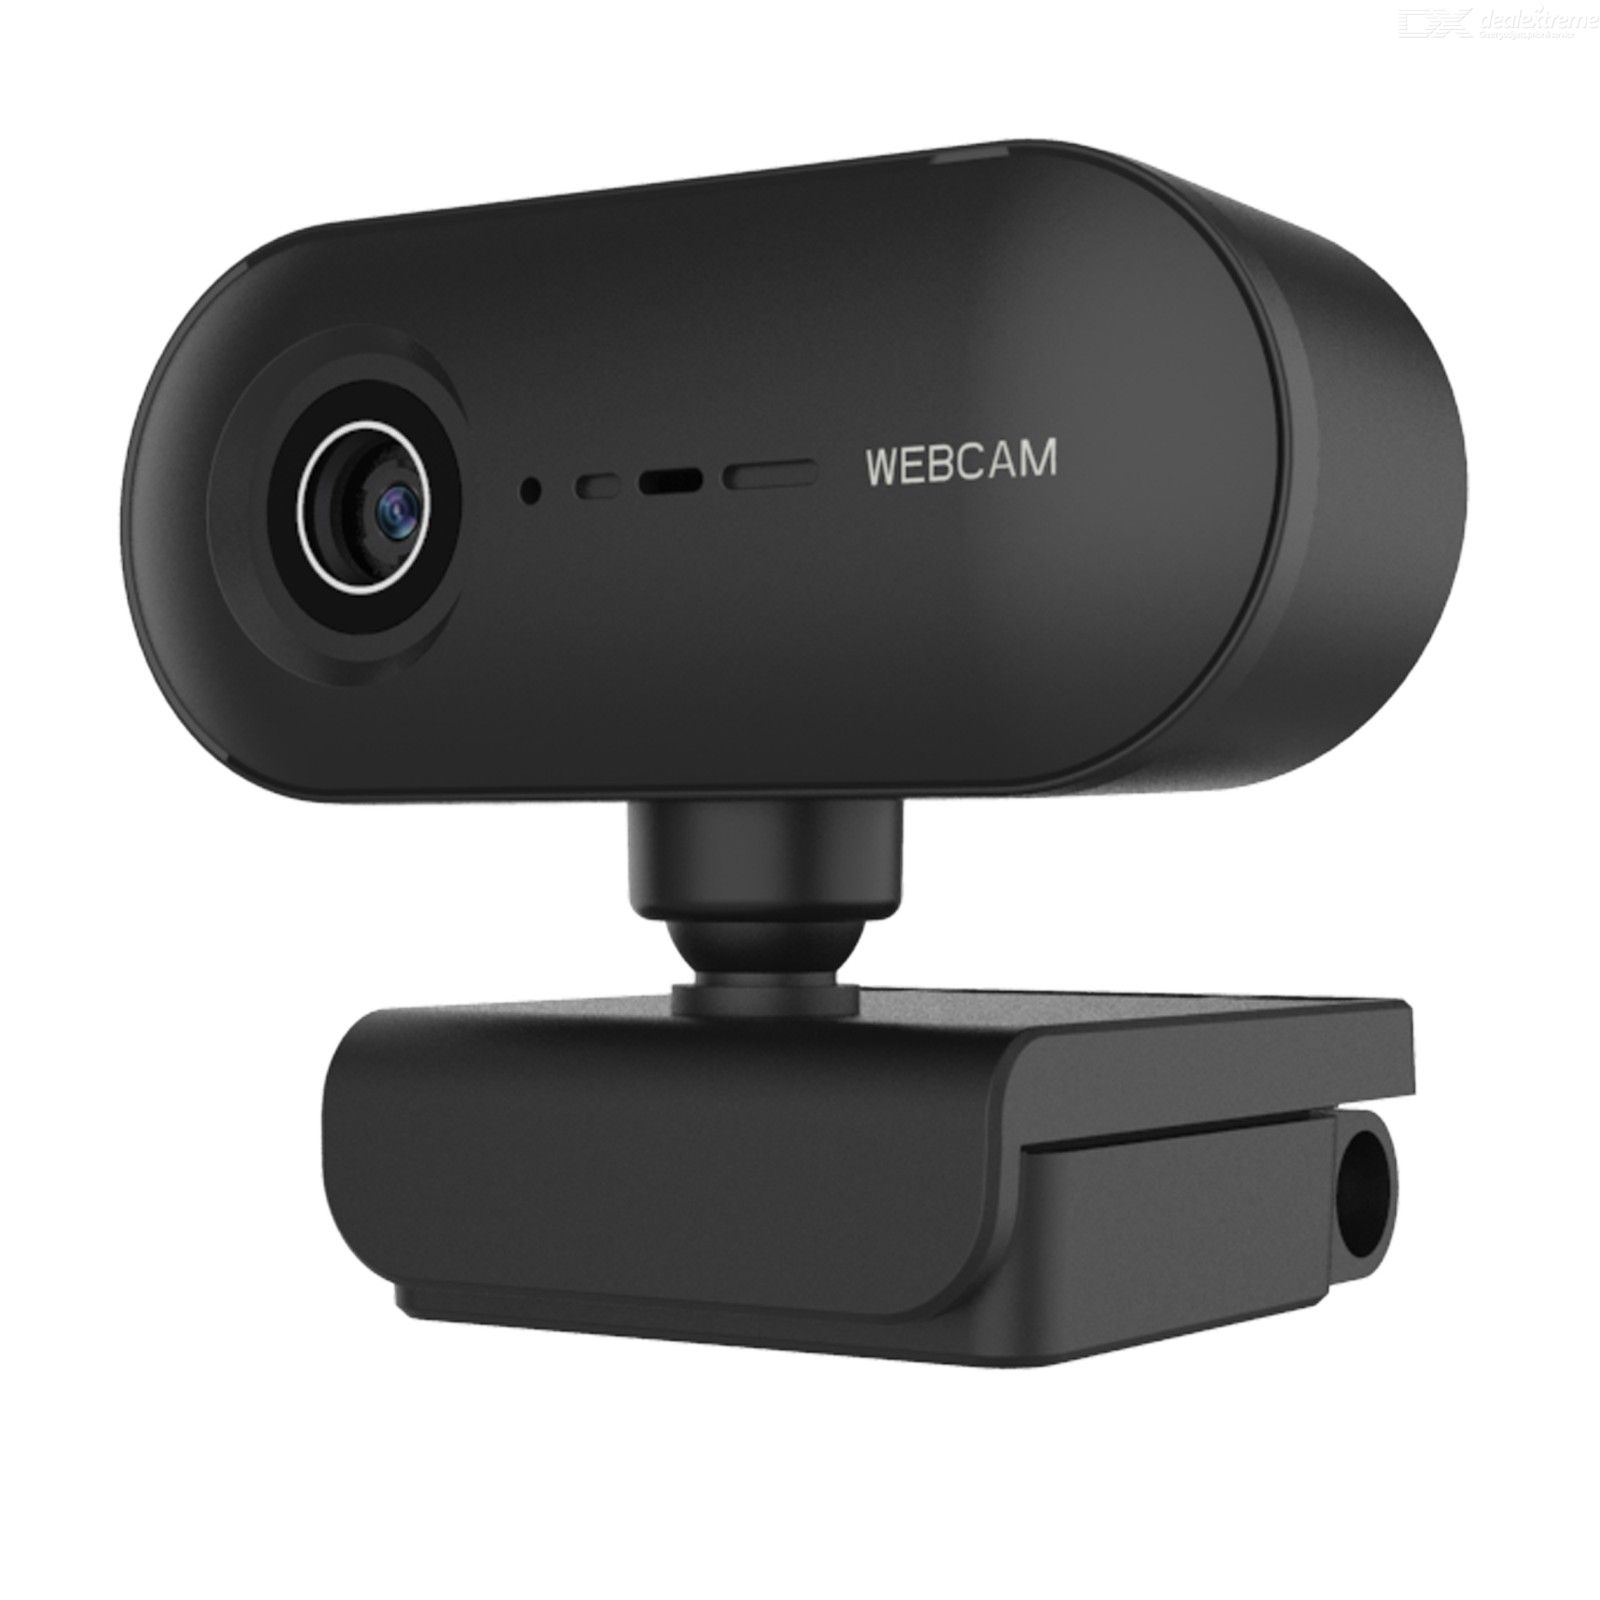 Full hd 1080p webcam mini computer pc webcamera with usb socket rotating cameras for live broadcast video call conference work